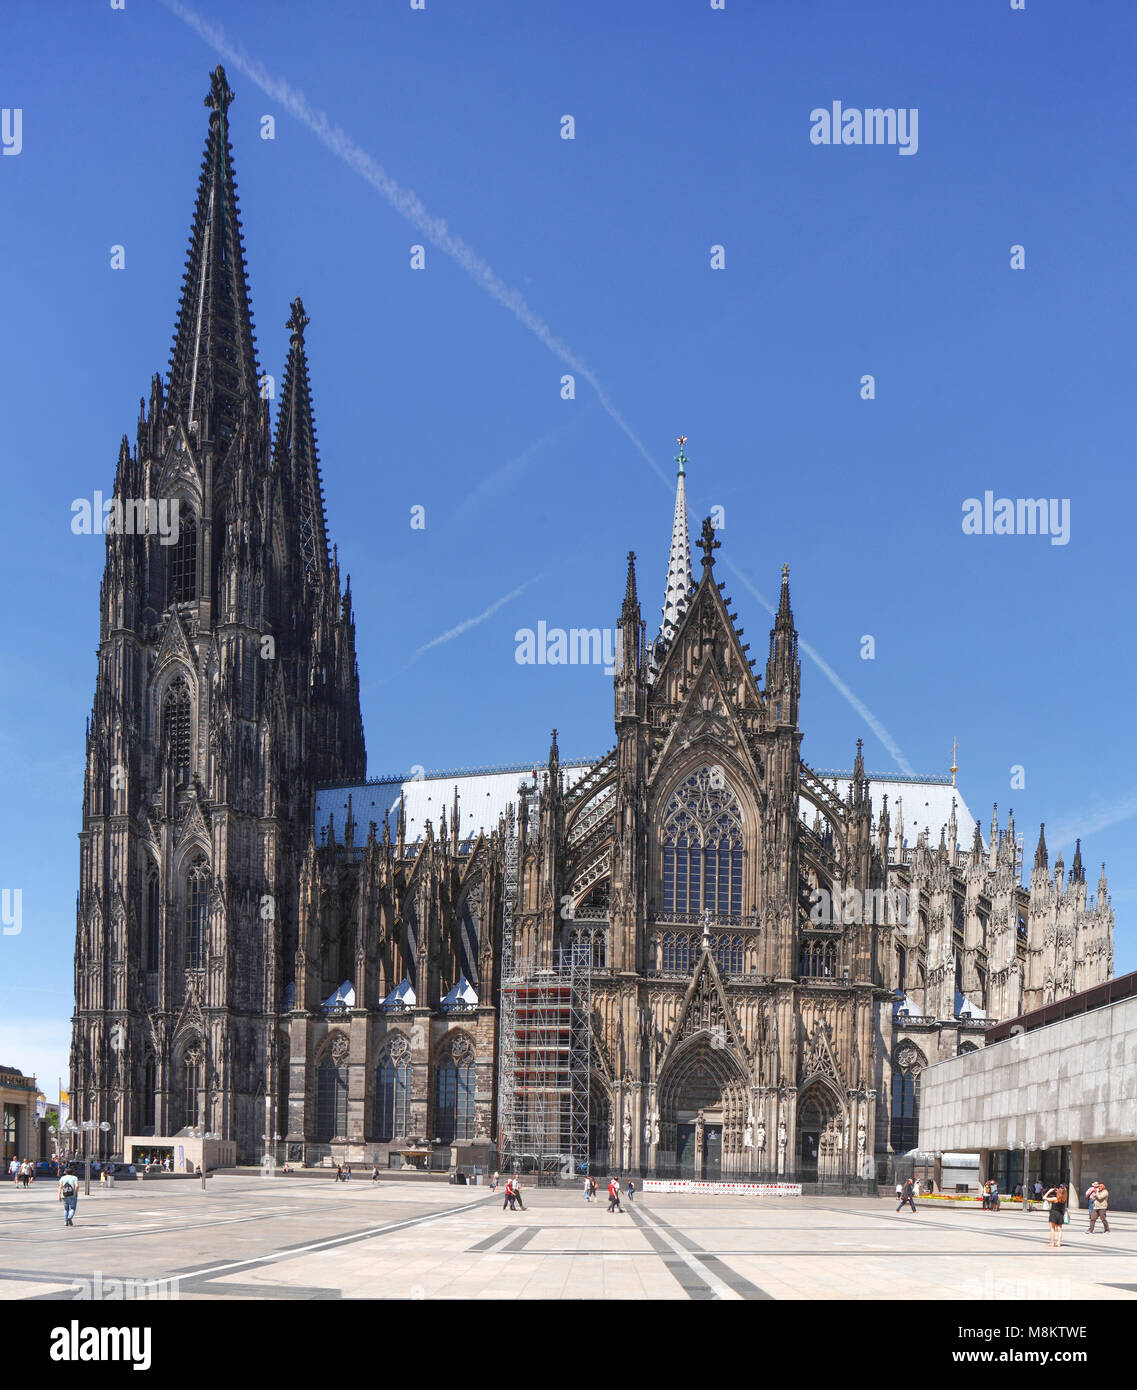 Kölner Dom Cathedral, Roncalliplatz Square, Cologne, North Rhine-Westphalia, Germany, Europe   I Kölner - Stock Image